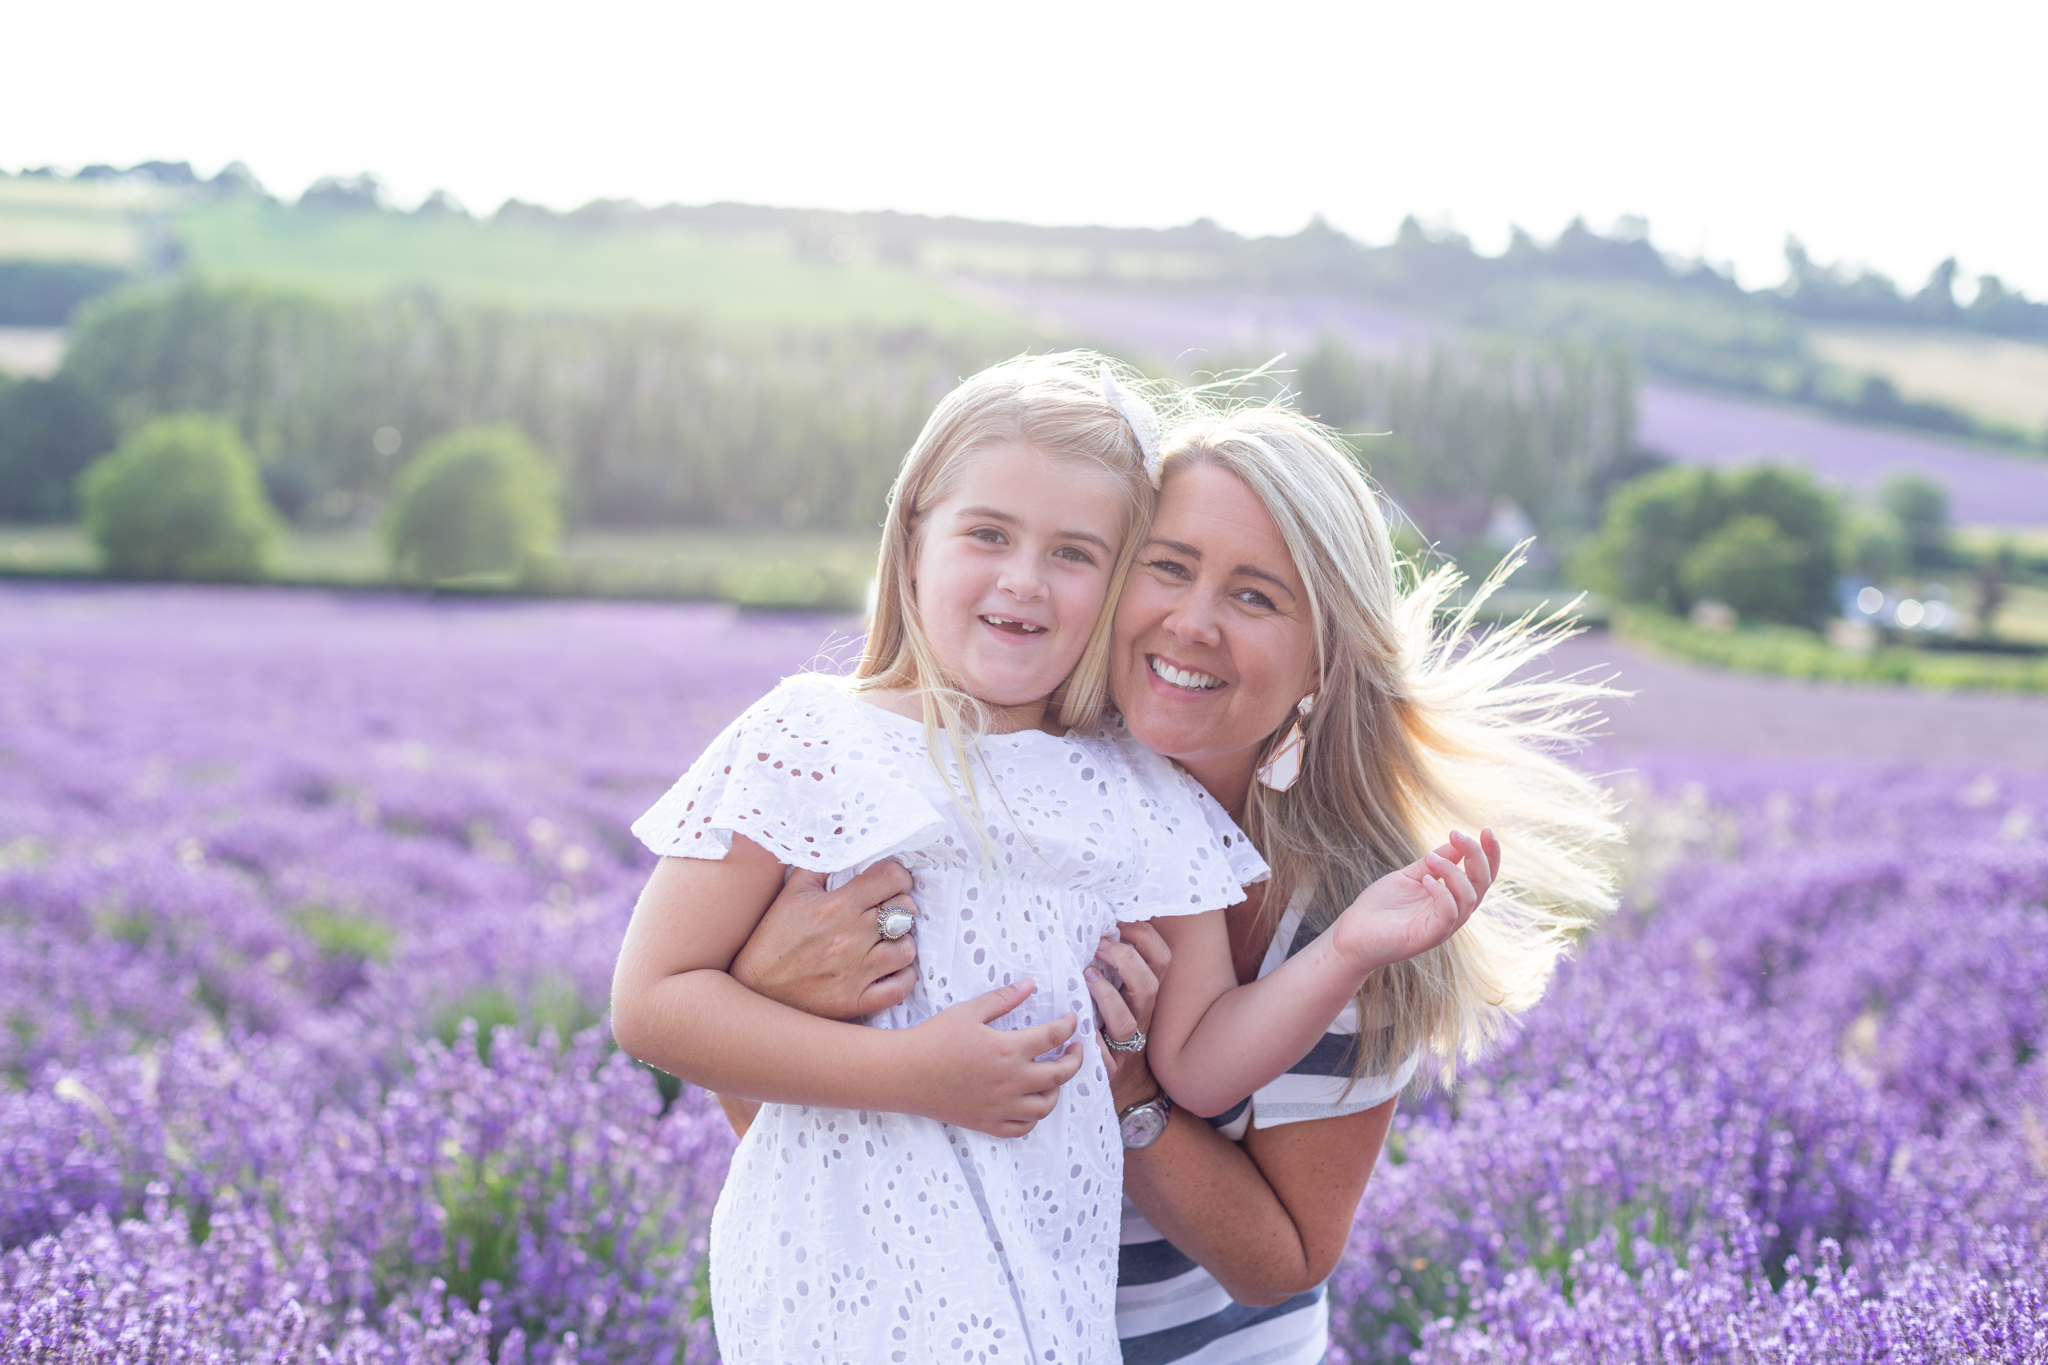 Bexley family photographer Nina Callow 3B&ME Photography London